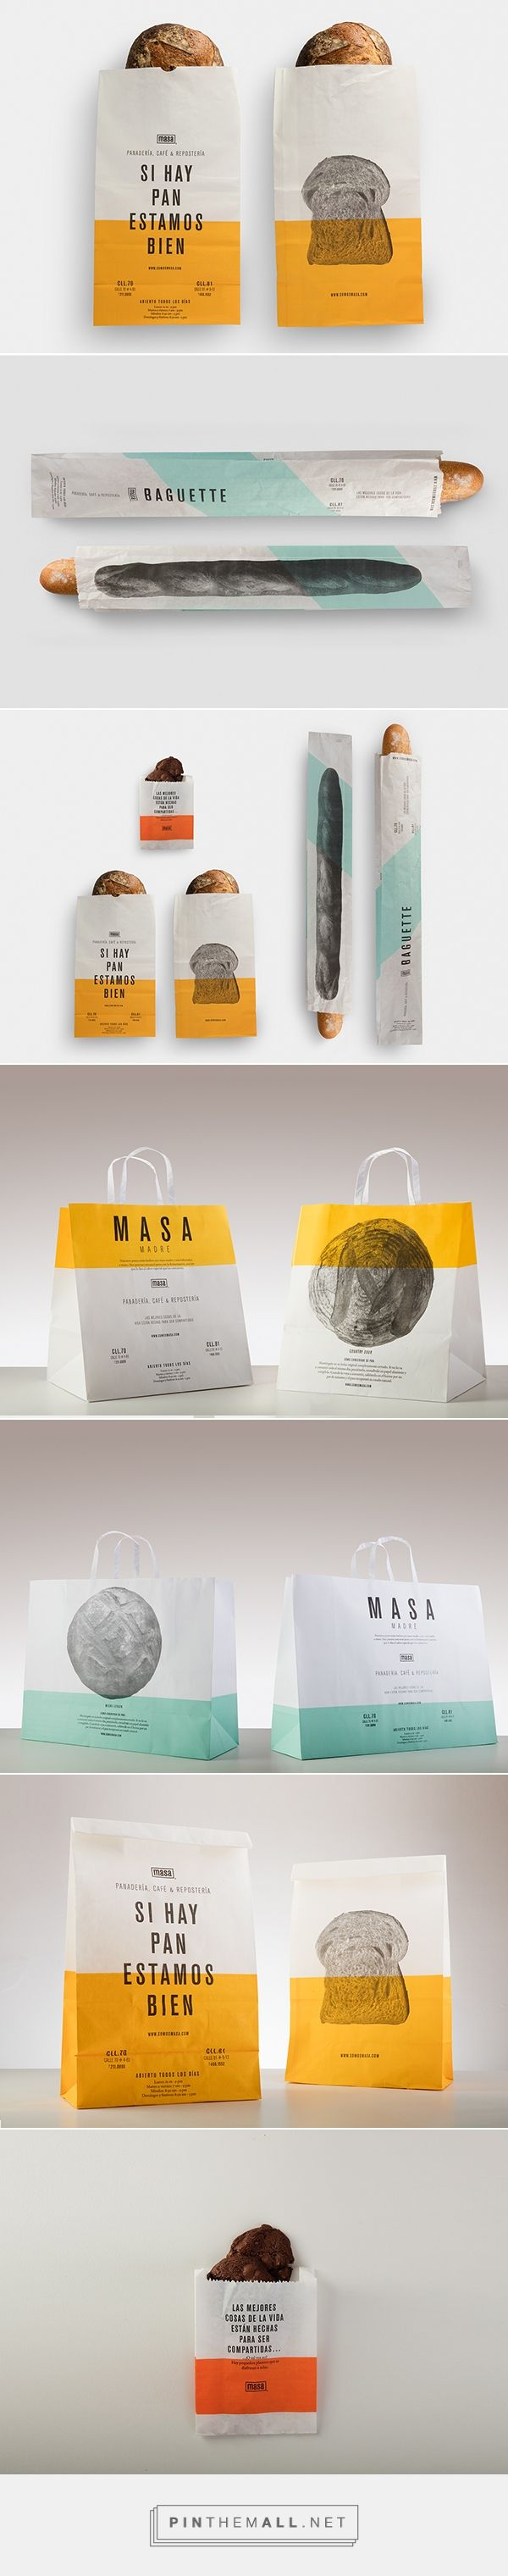 Masa  - take away bags on Packaging Design Served - created via https://pinthemall.net